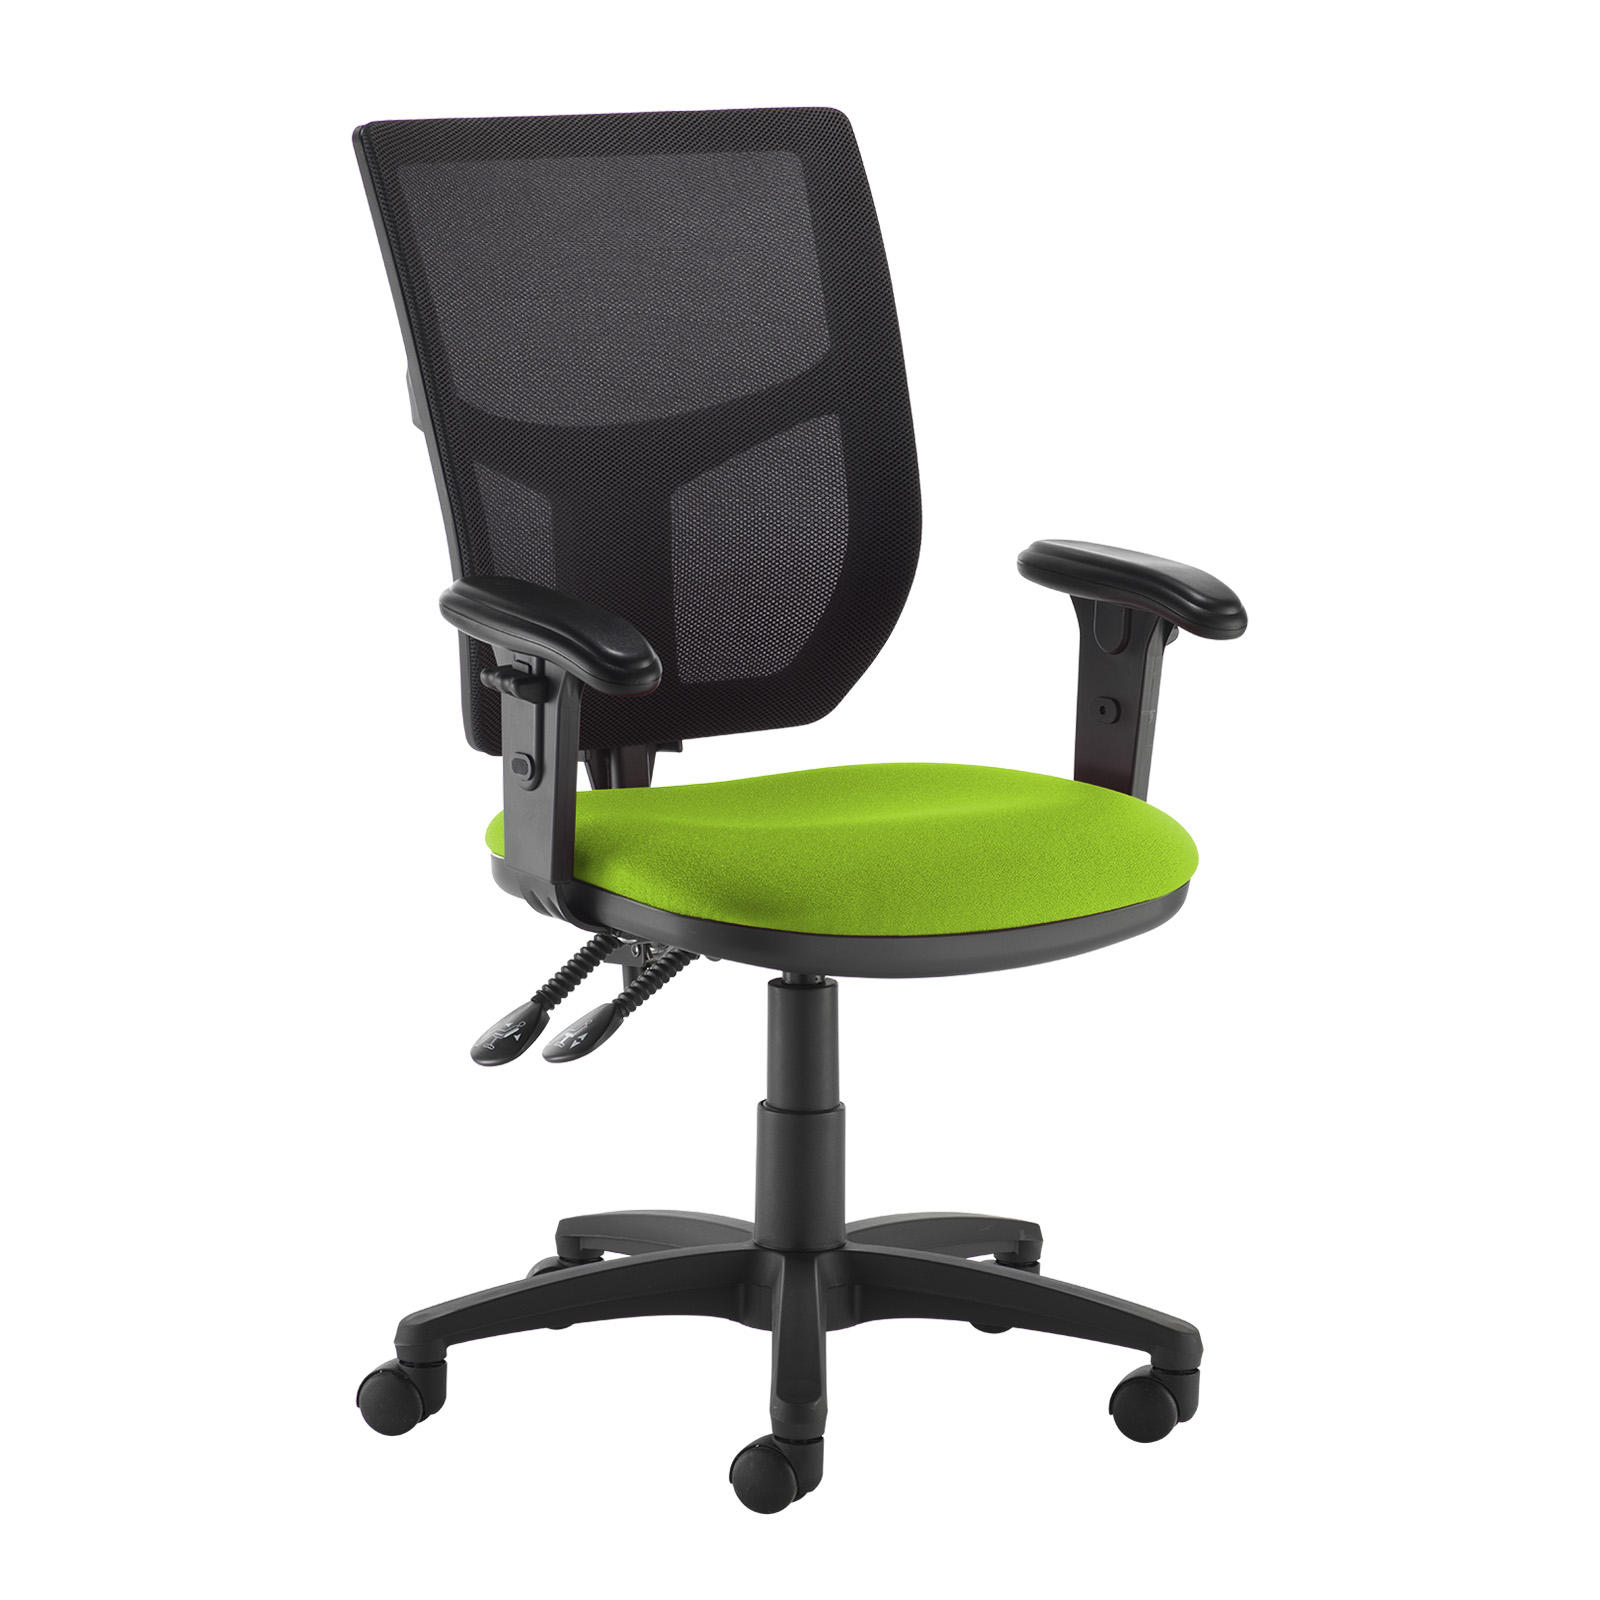 Desk Chairs Altino 2 lever high mesh back operators chair with adjustable arms - green